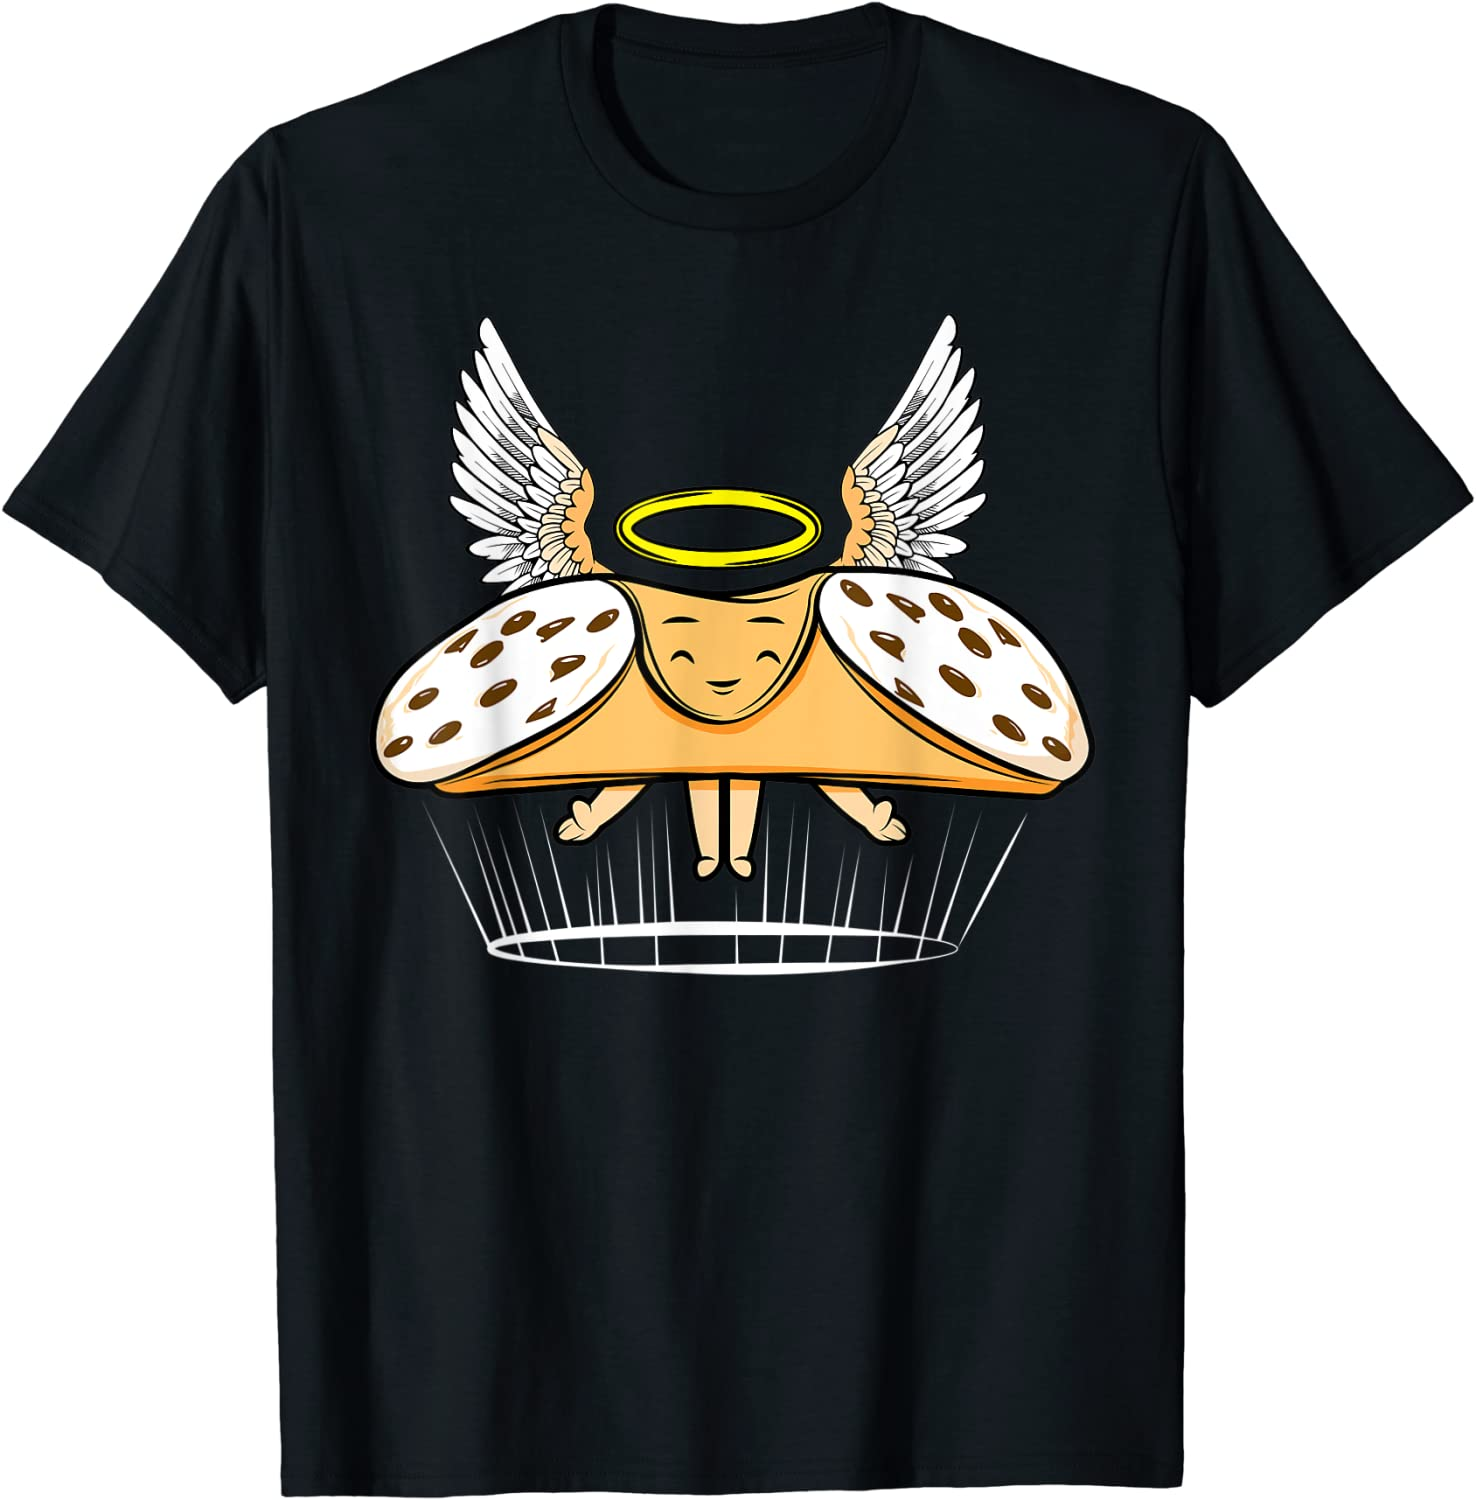 Holy Cannoli Italian Food Pun Excited Shocked Gift T-Shirt